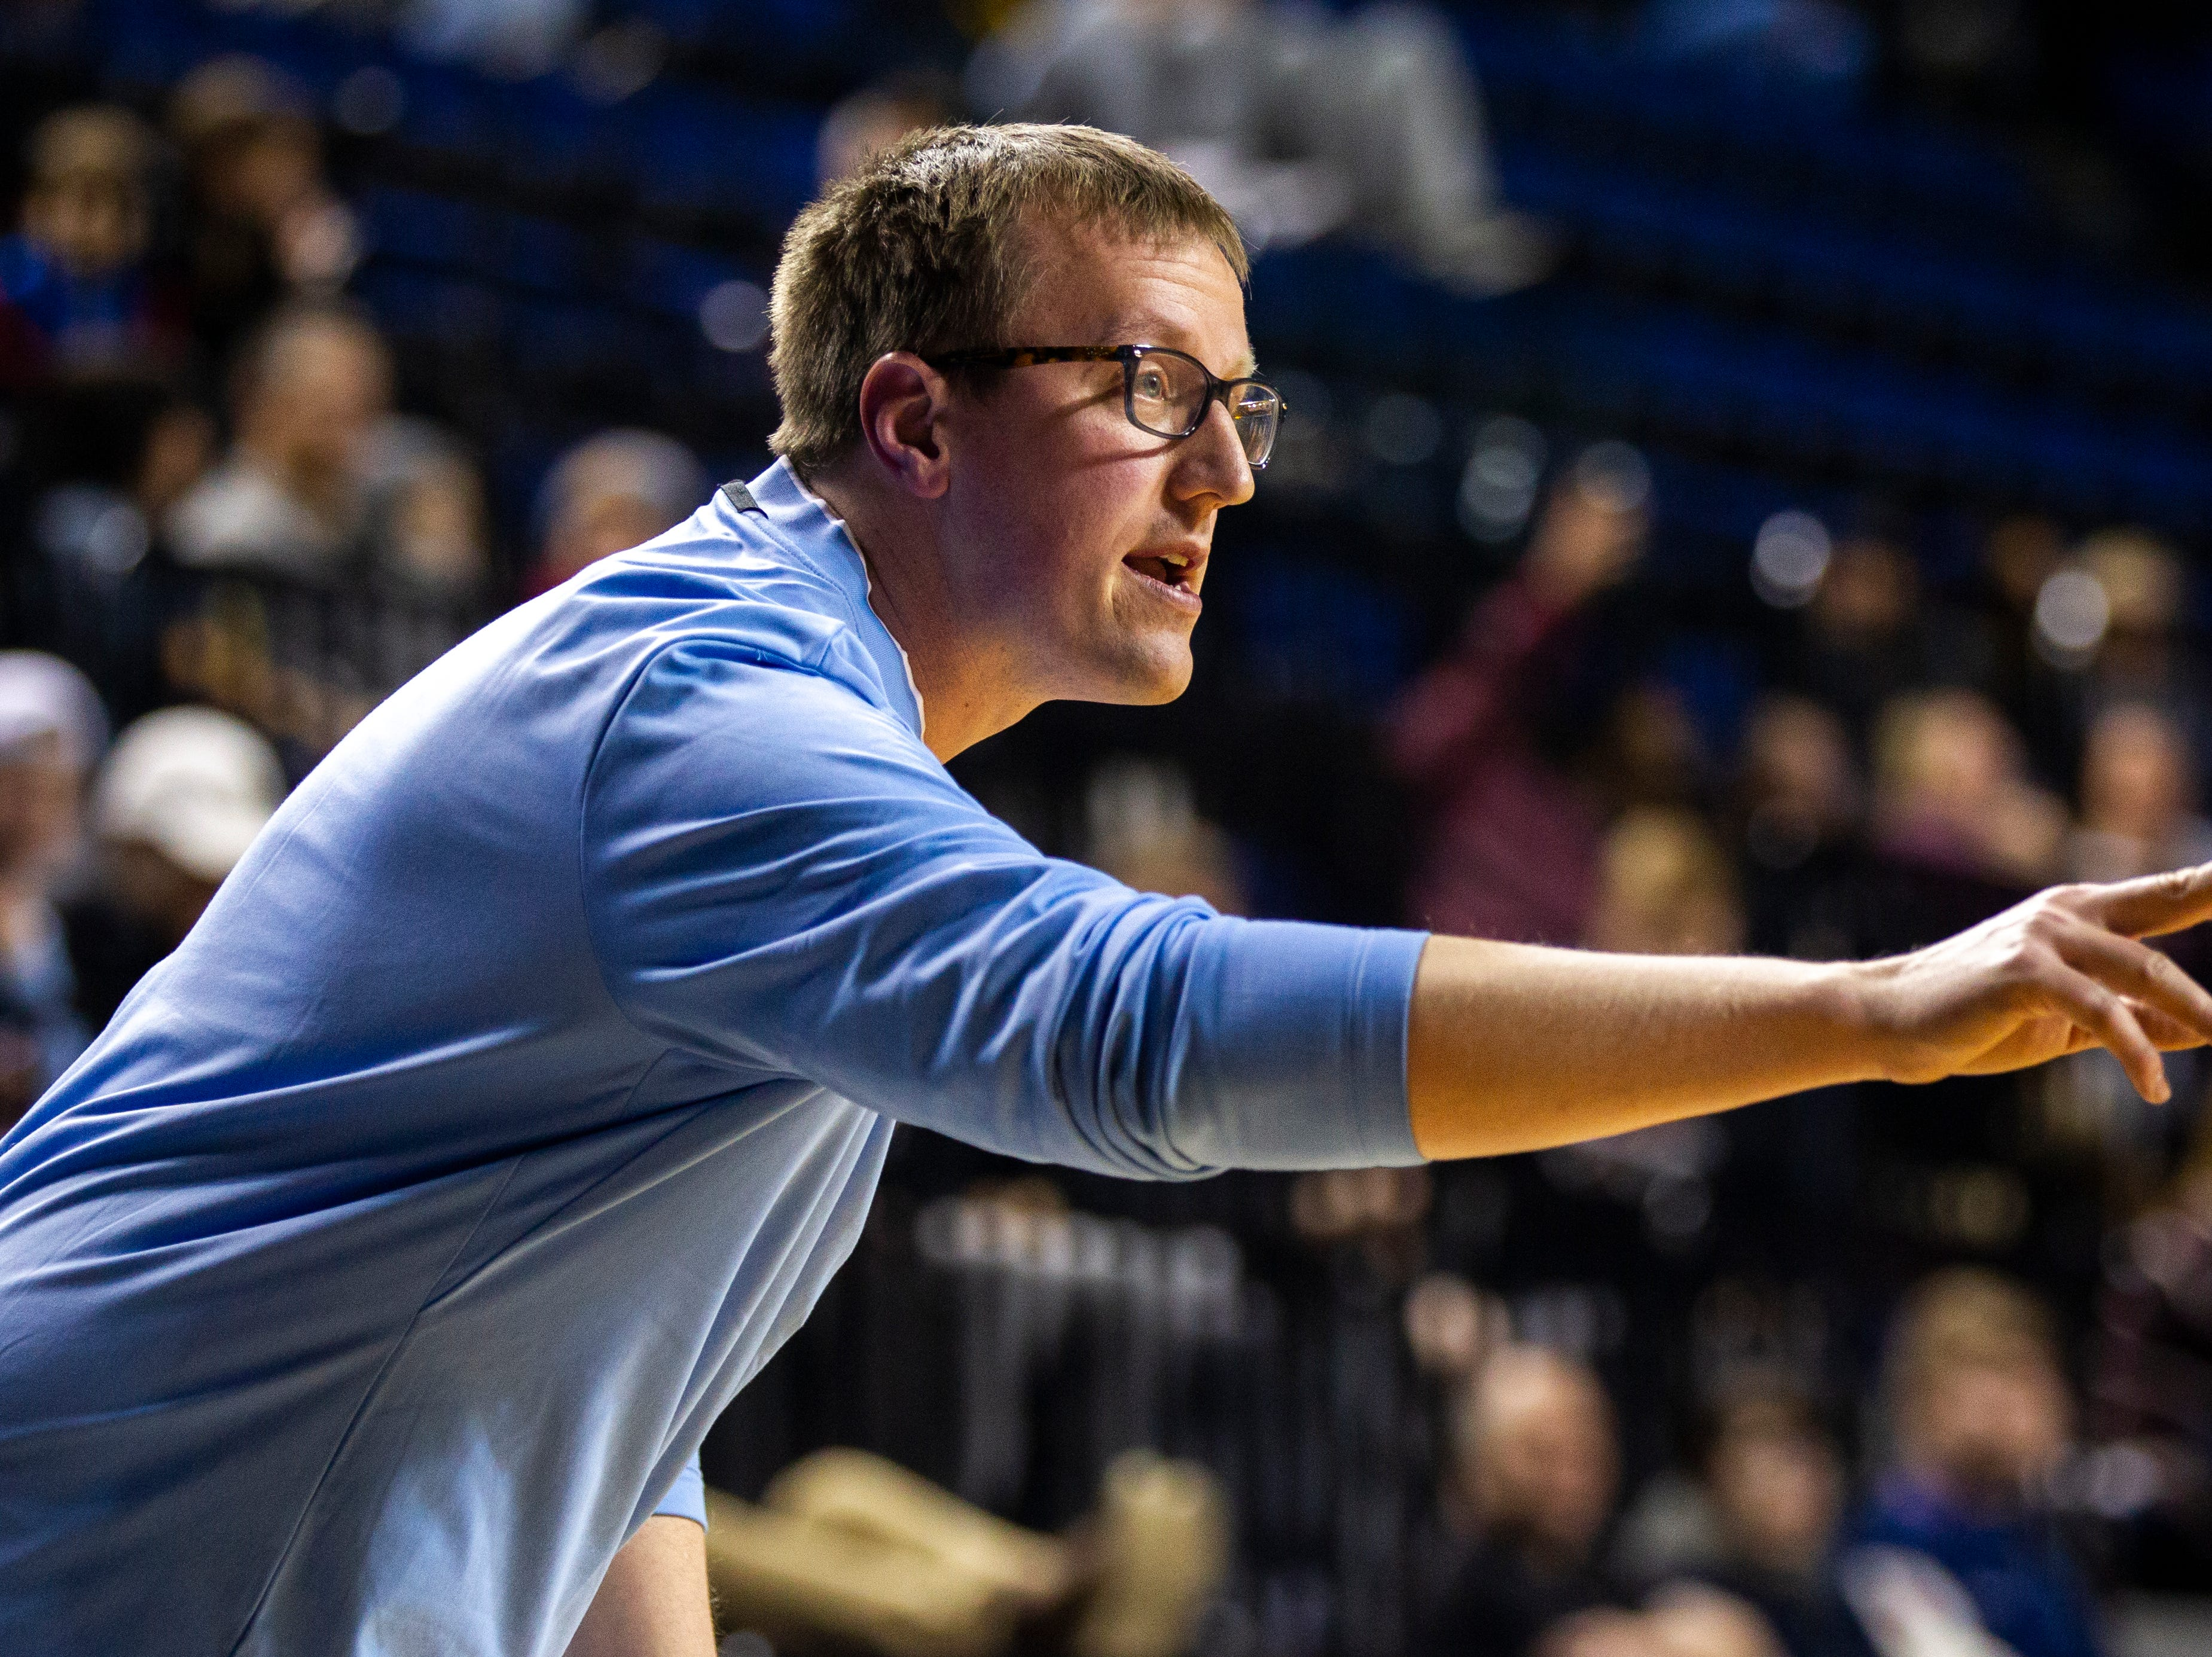 Cedar Rapids Jefferson head coach Brandon Horman calls out to players during a boys' basketball game in the Wells Fargo Advisors Shootout on Saturday, Jan. 19, 2019, at the U.S. Cellular Center in Cedar Rapids, Iowa.